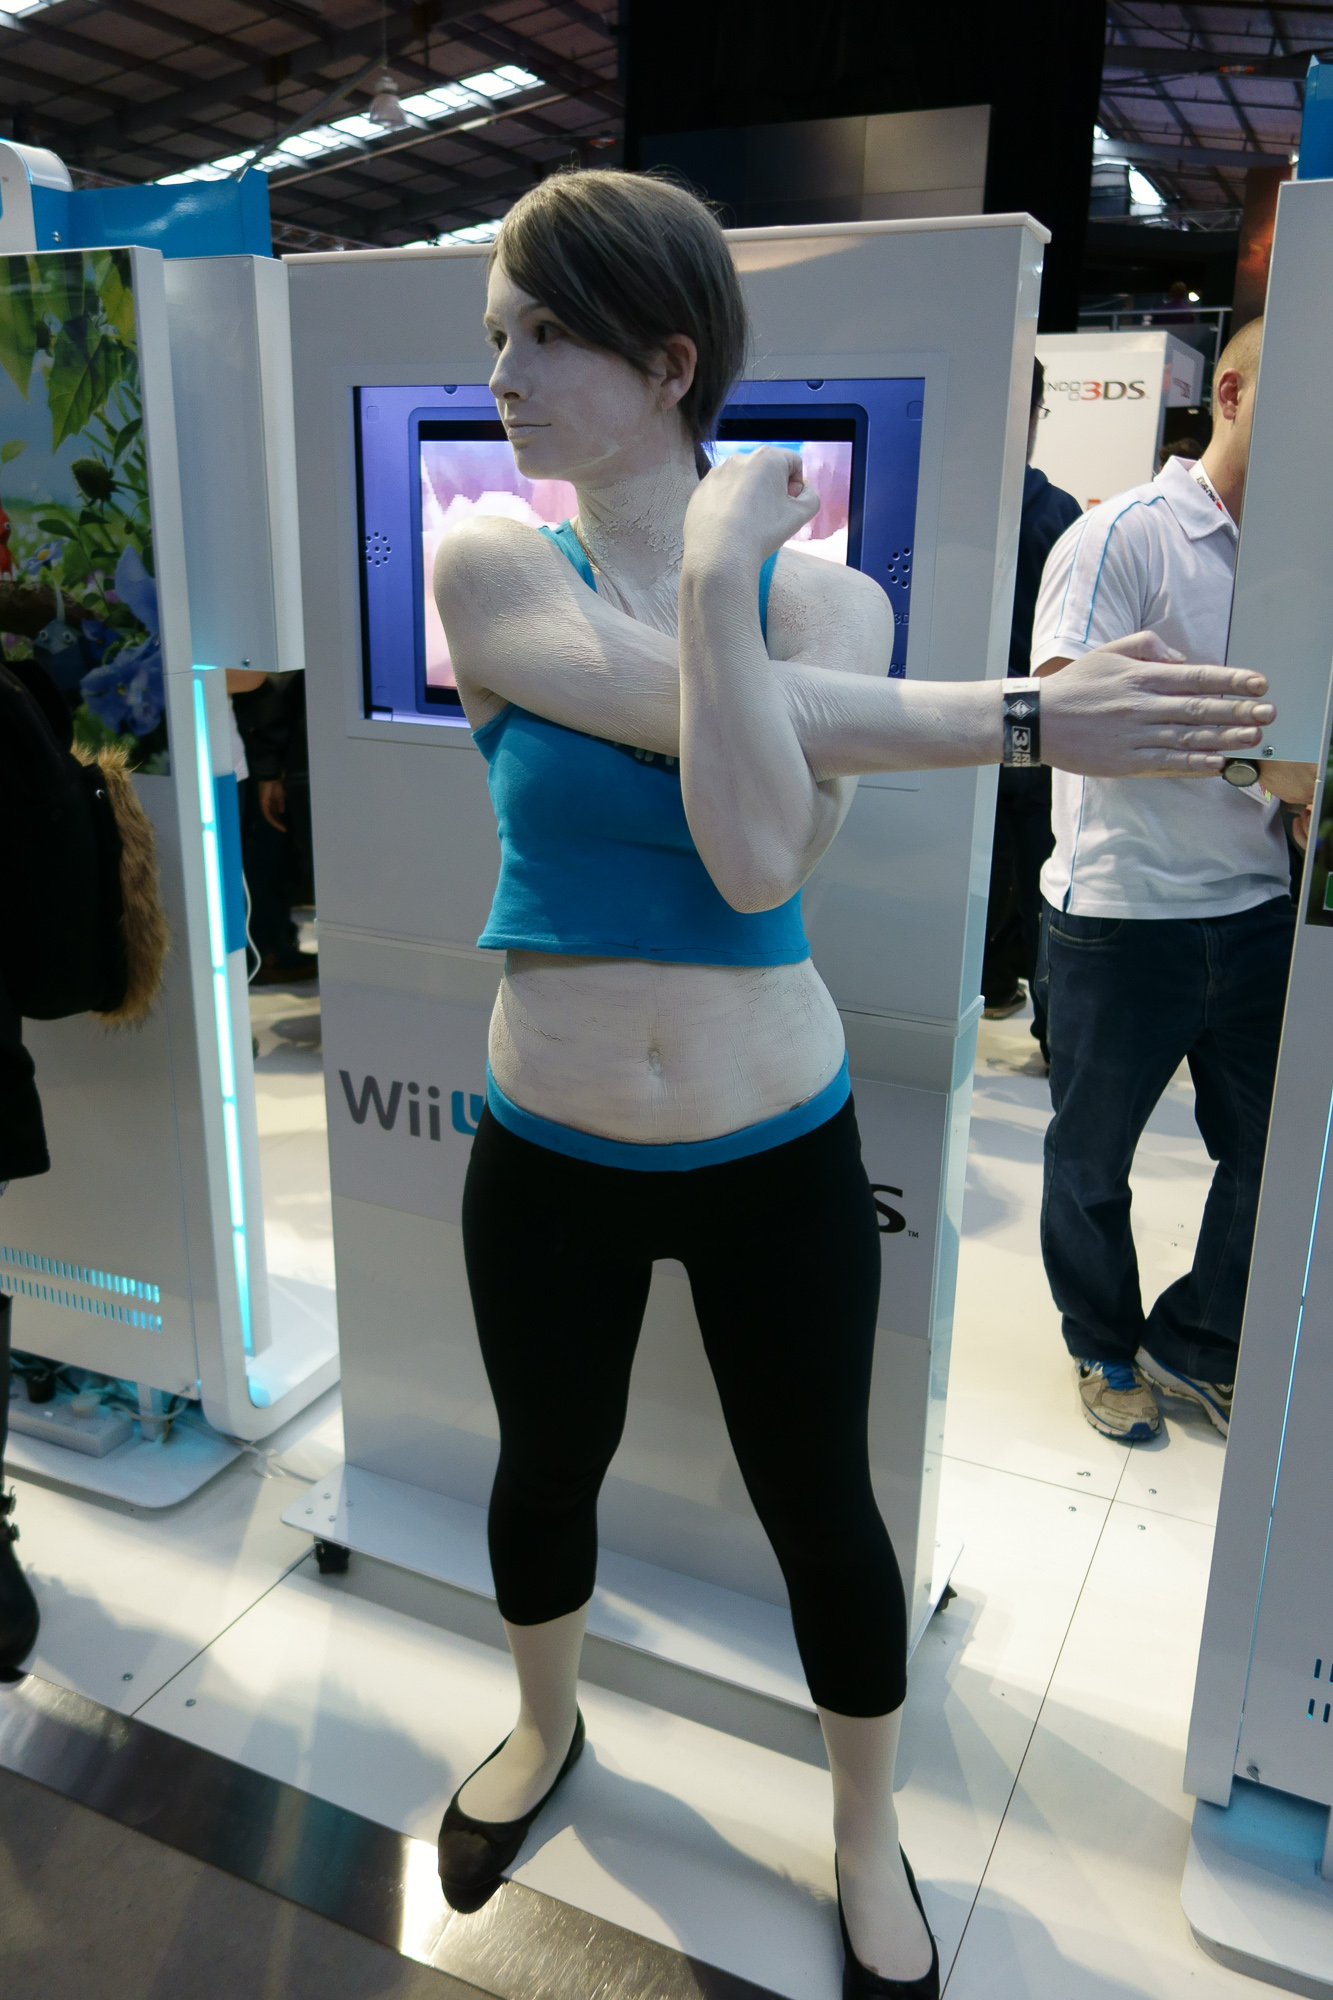 Some crazy good Wii Fit girl cosplay. Going the extra mile with the body-paint!